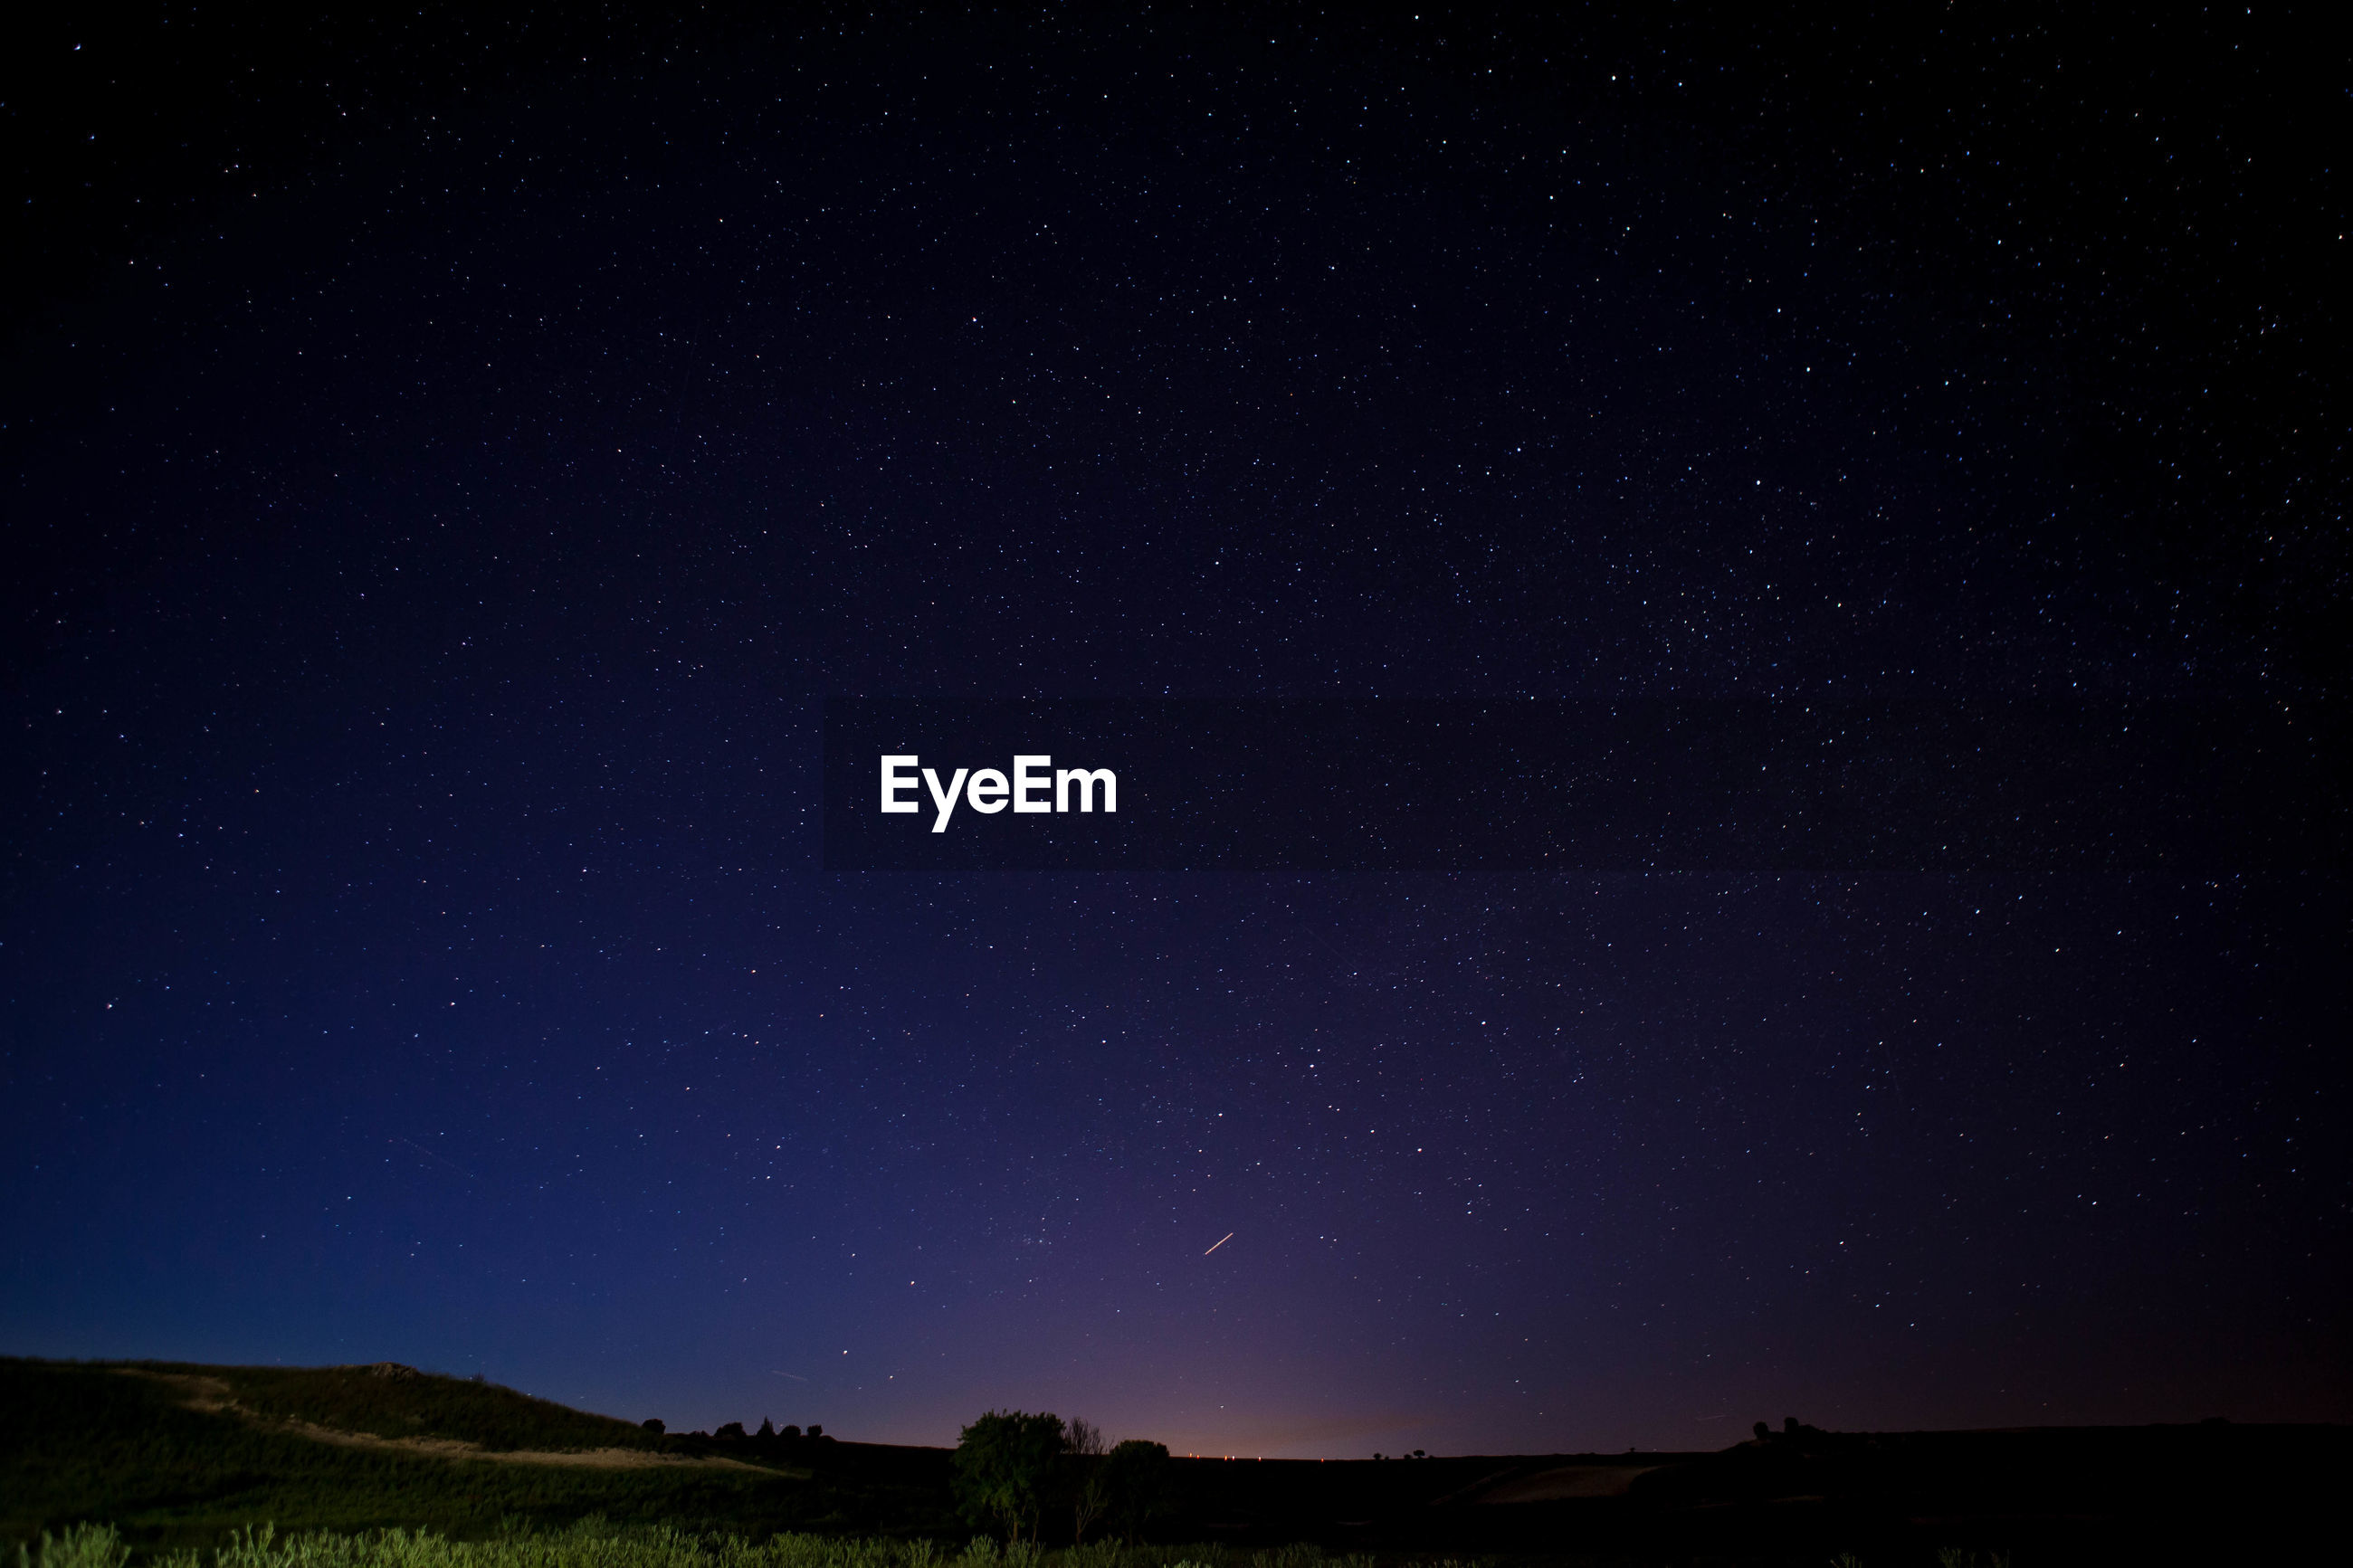 LOW ANGLE VIEW OF STAR FIELD AGAINST SKY